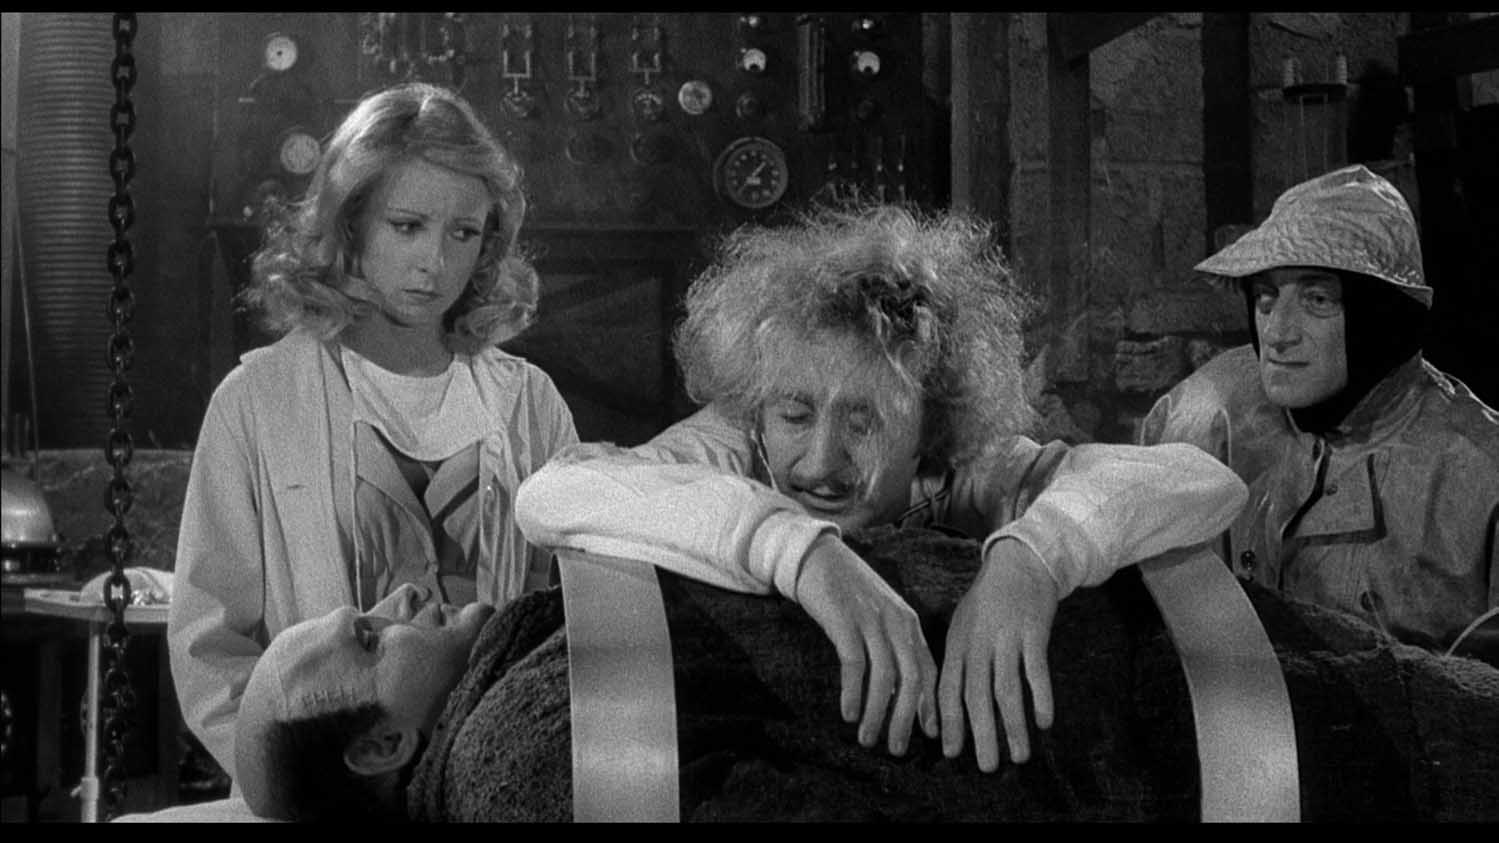 young frankenstein film Young frankenstein is a 1974 american horror comedy film directed by mel brooks and starring gene wilder as the title character.